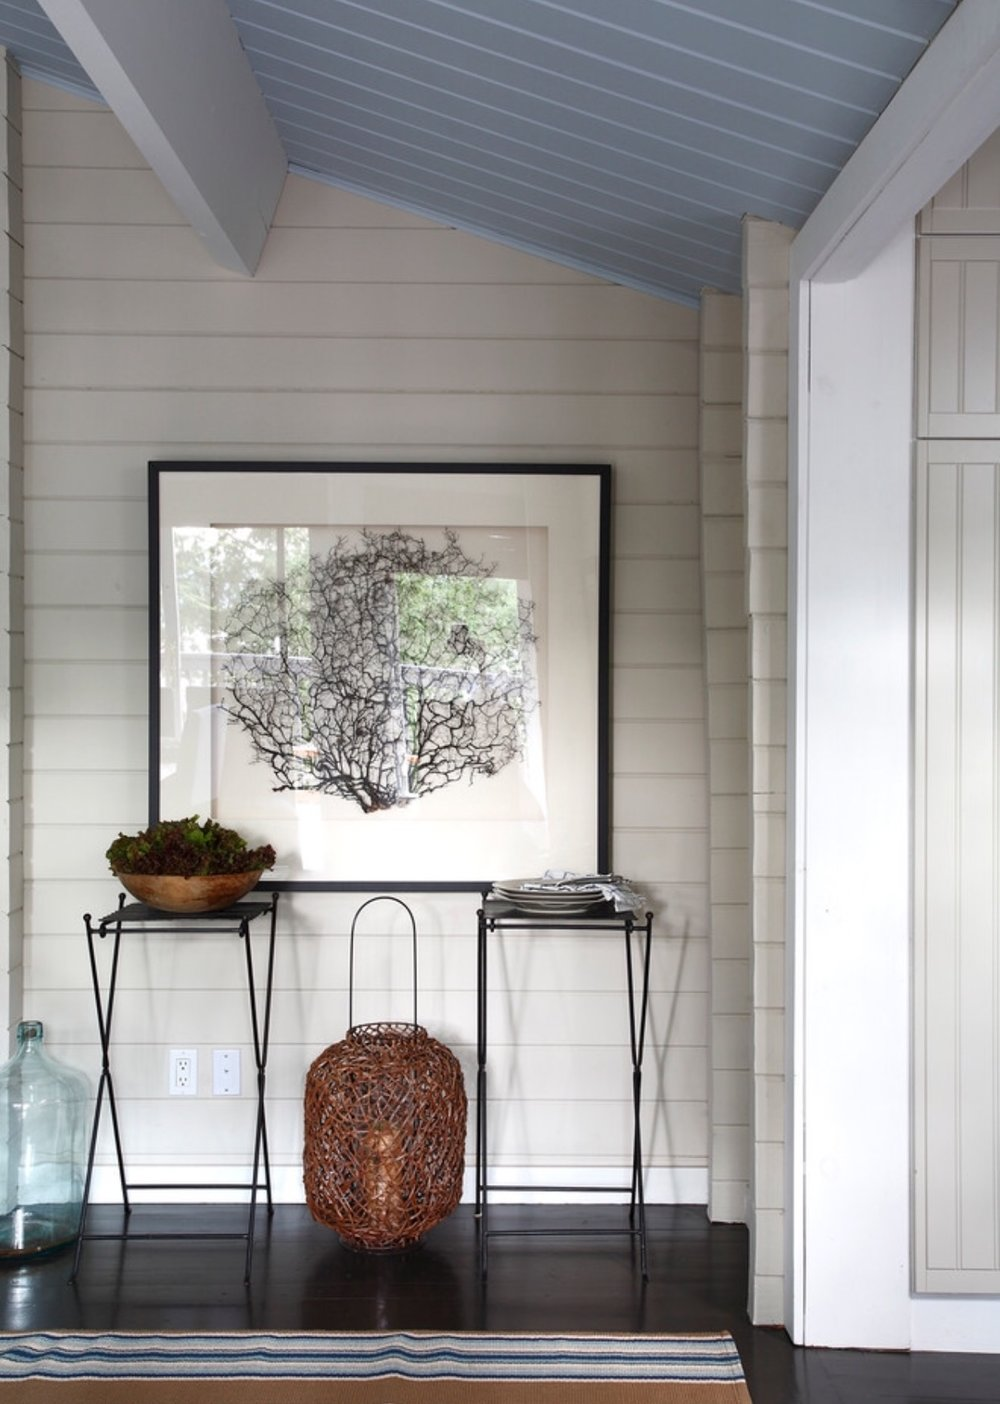 Oversize Sea Fan Wall Decor, striped rug, and blue ceiling